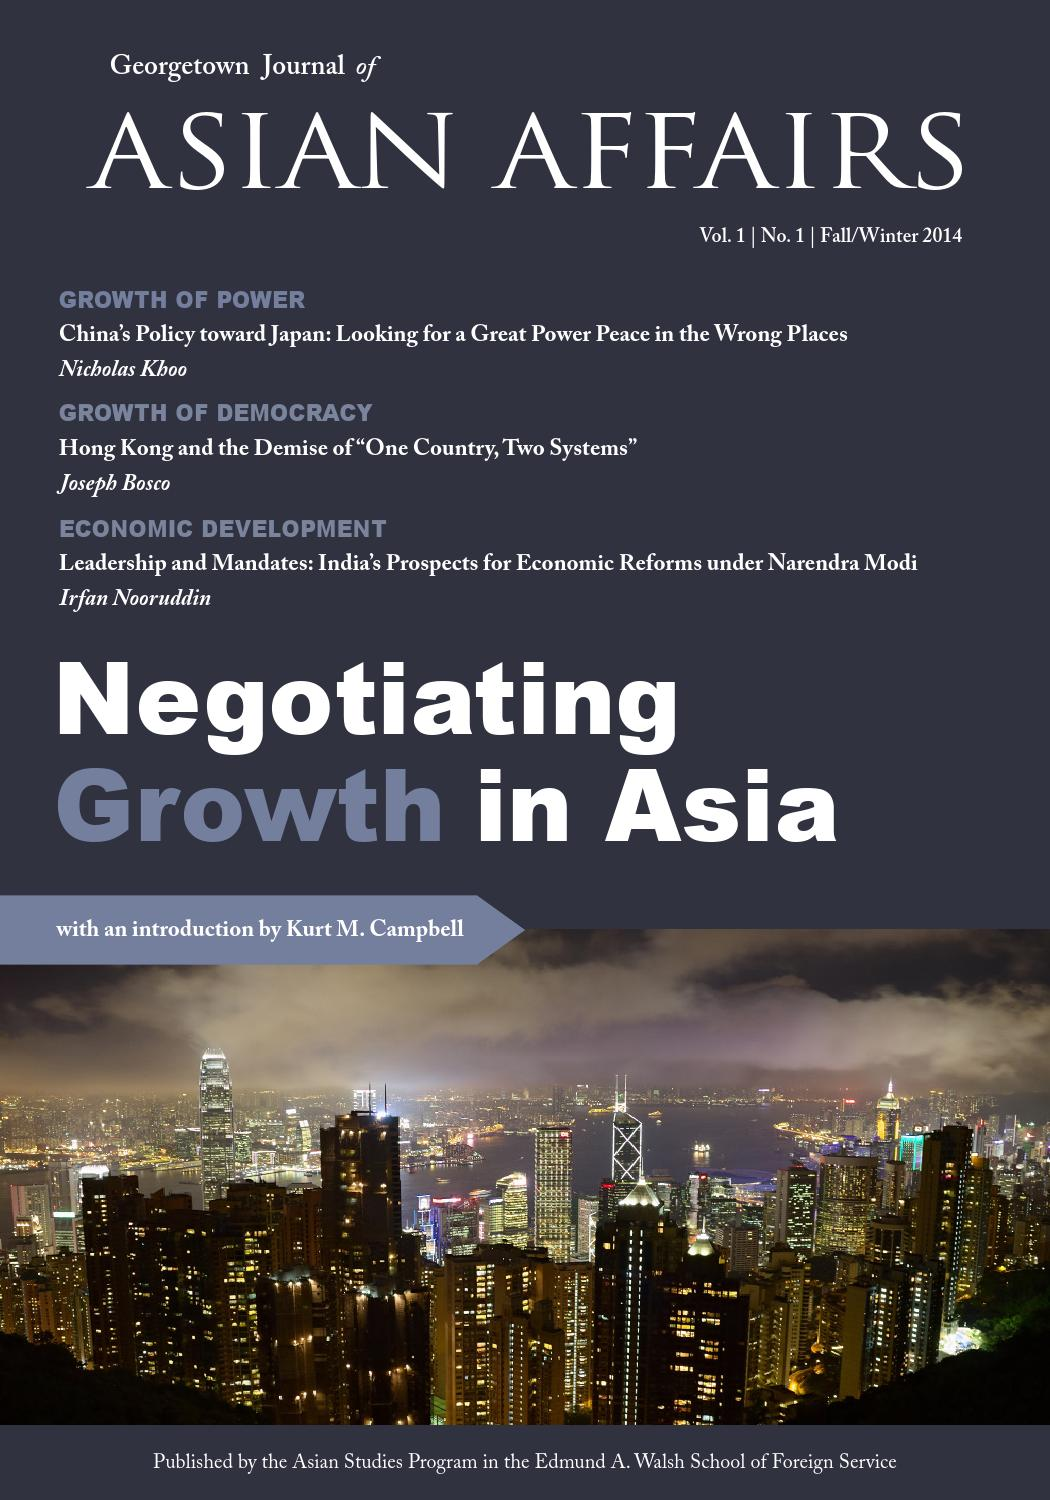 Georgetown Journal of Asian Affairs | Fall/Winter 2014 by School of Foreign  Service - Georgetown University - issuu